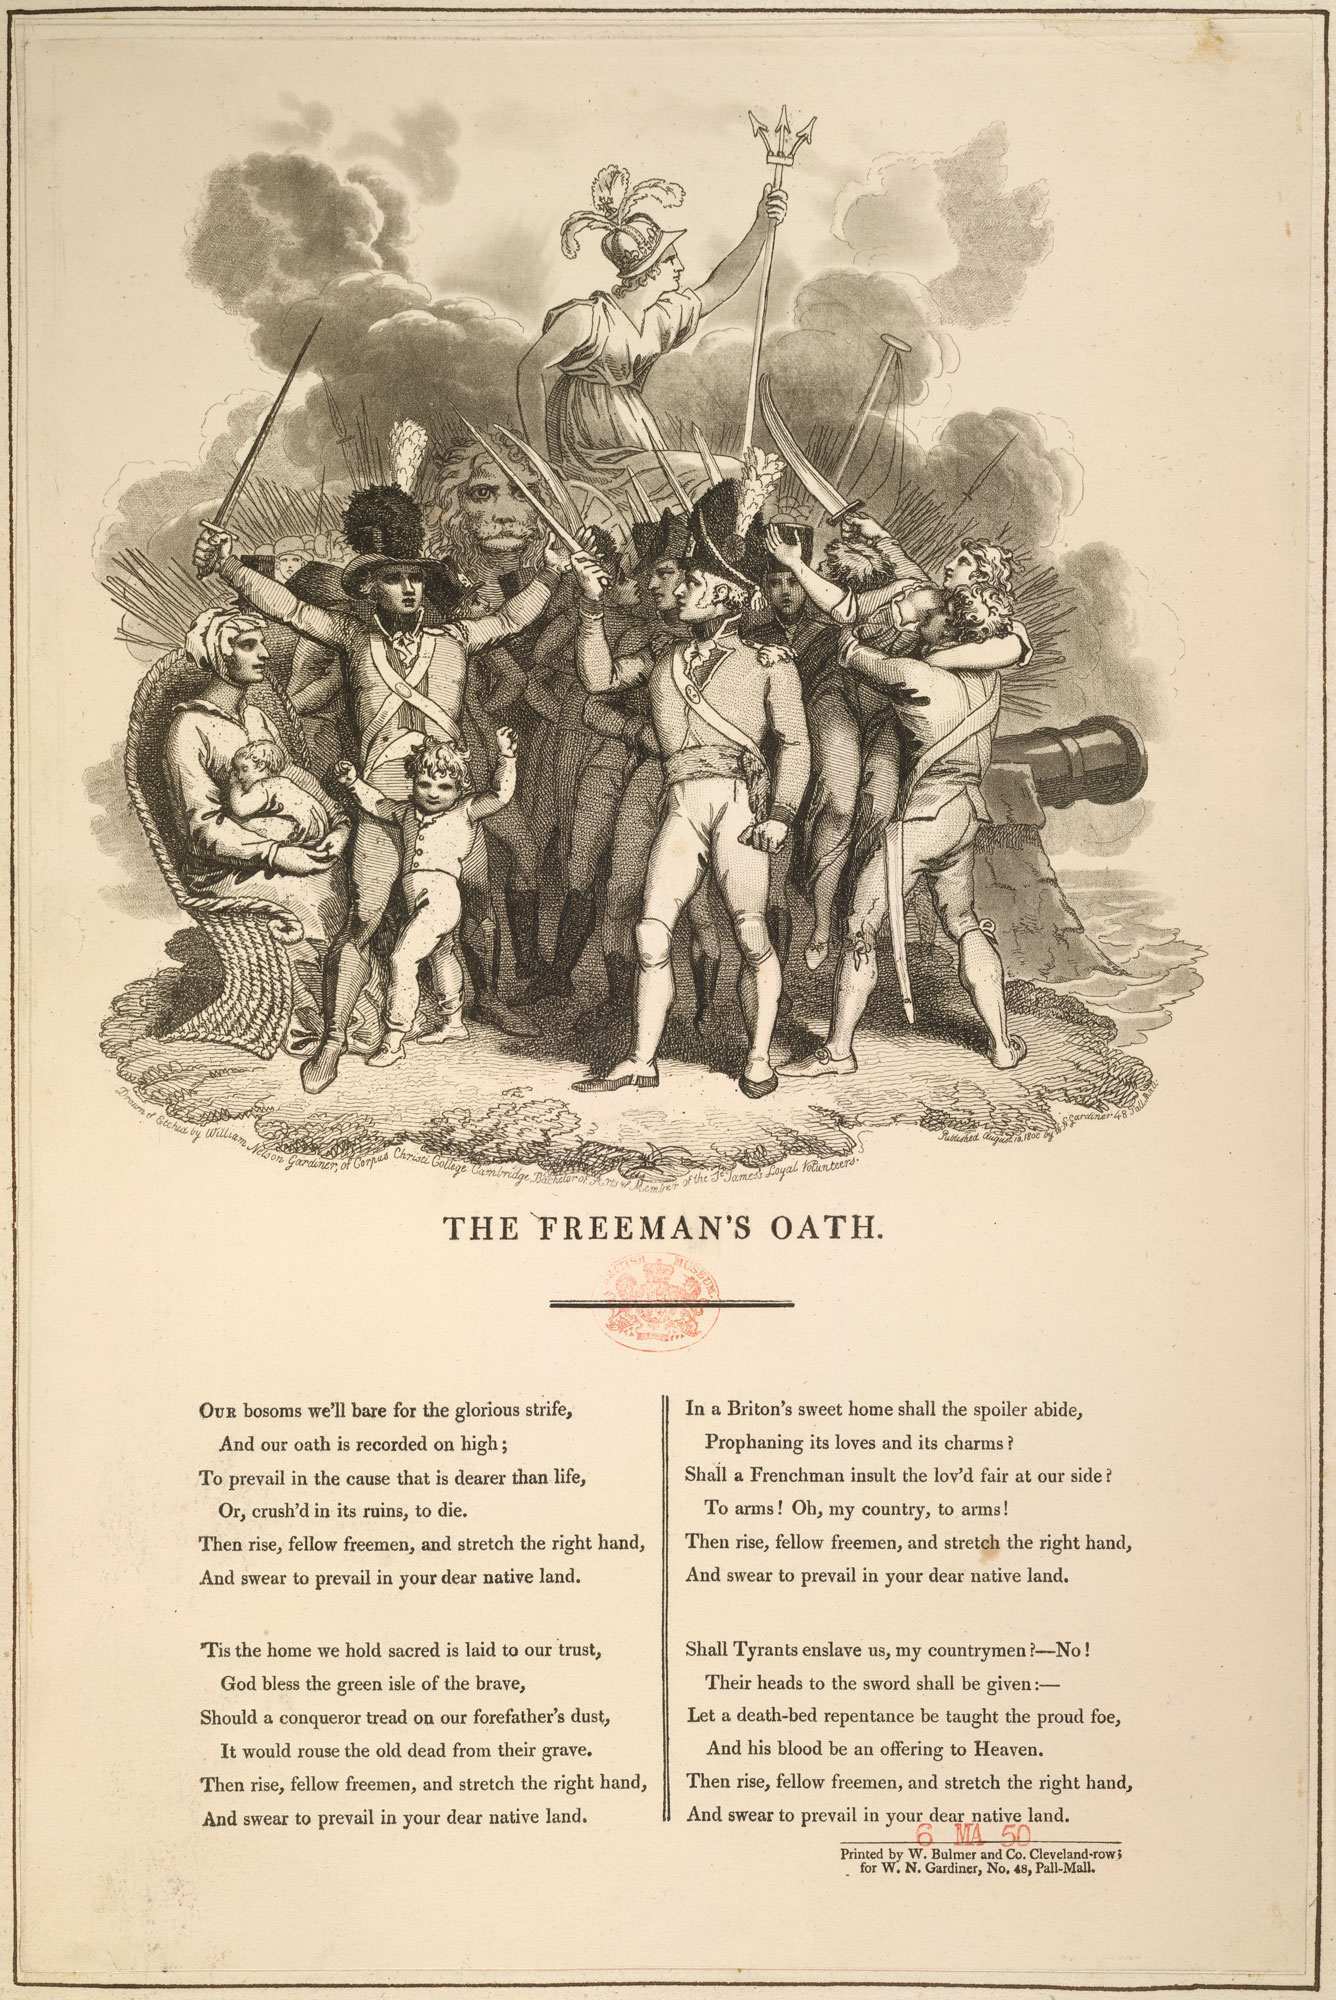 The Freeman's Oath, from a collection of material relating to the fear of a French invasion